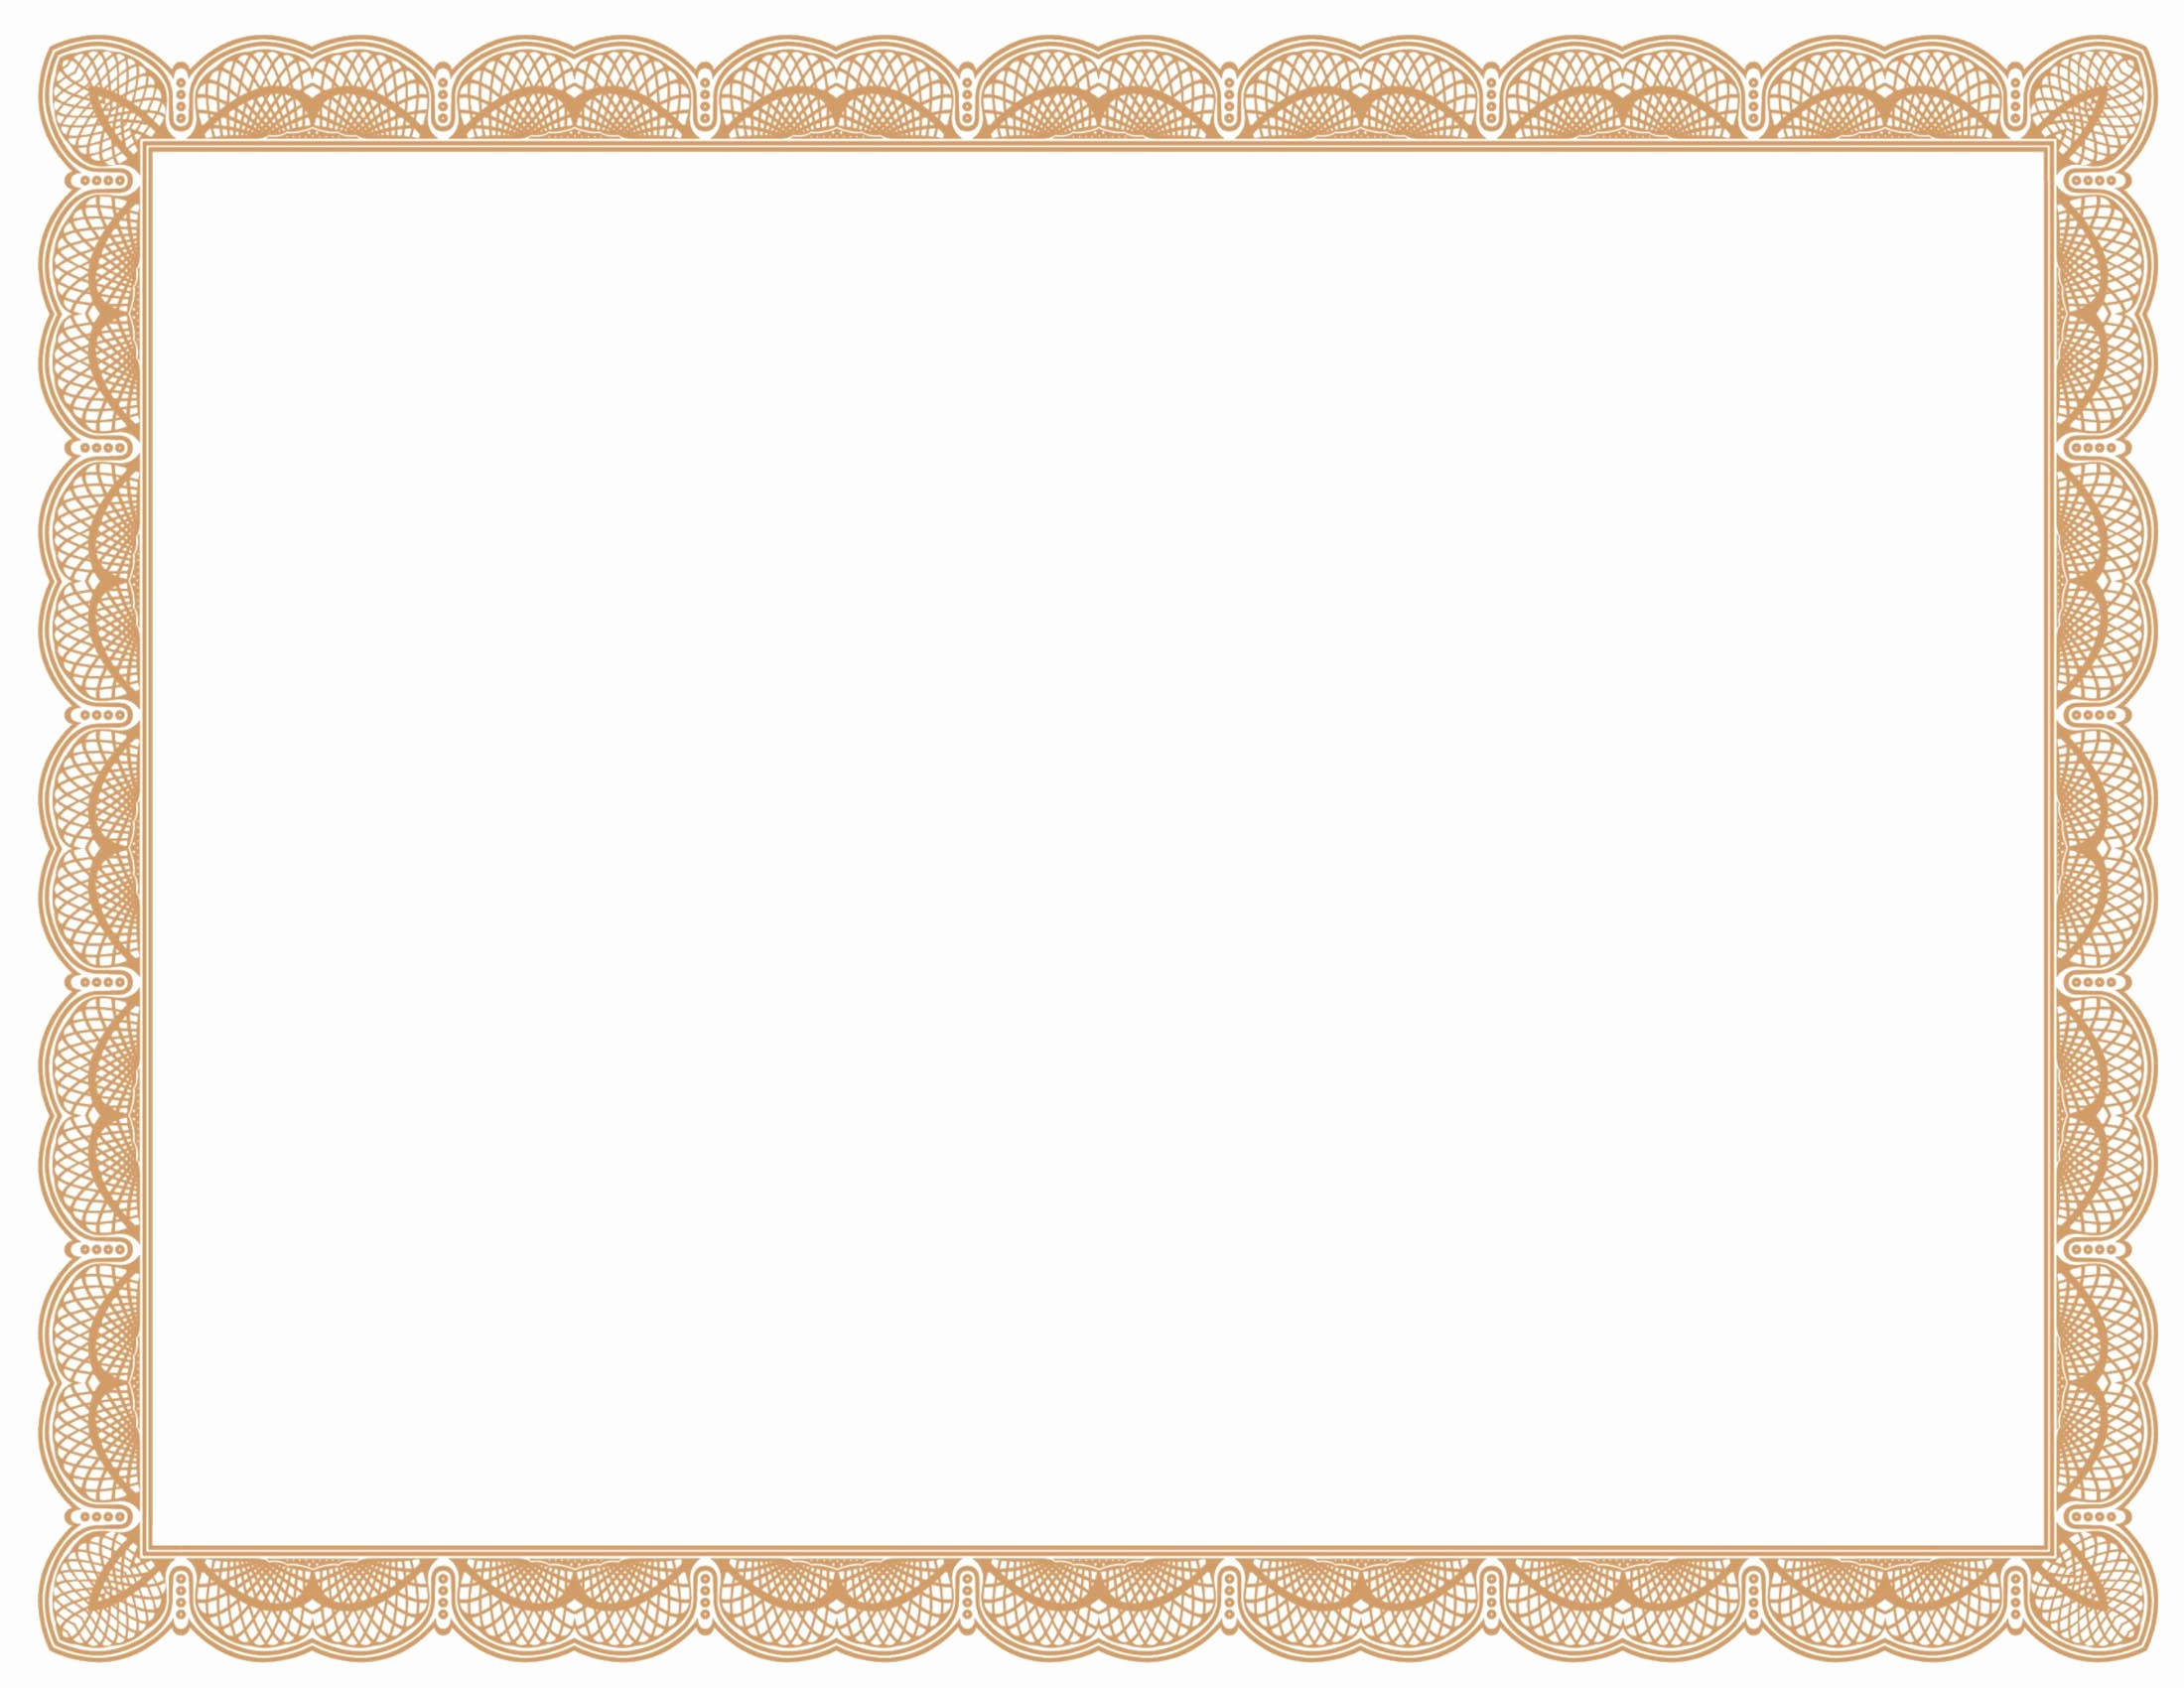 Blank Certificate Templates for Word Beautiful 5 New Certificate Border Templates